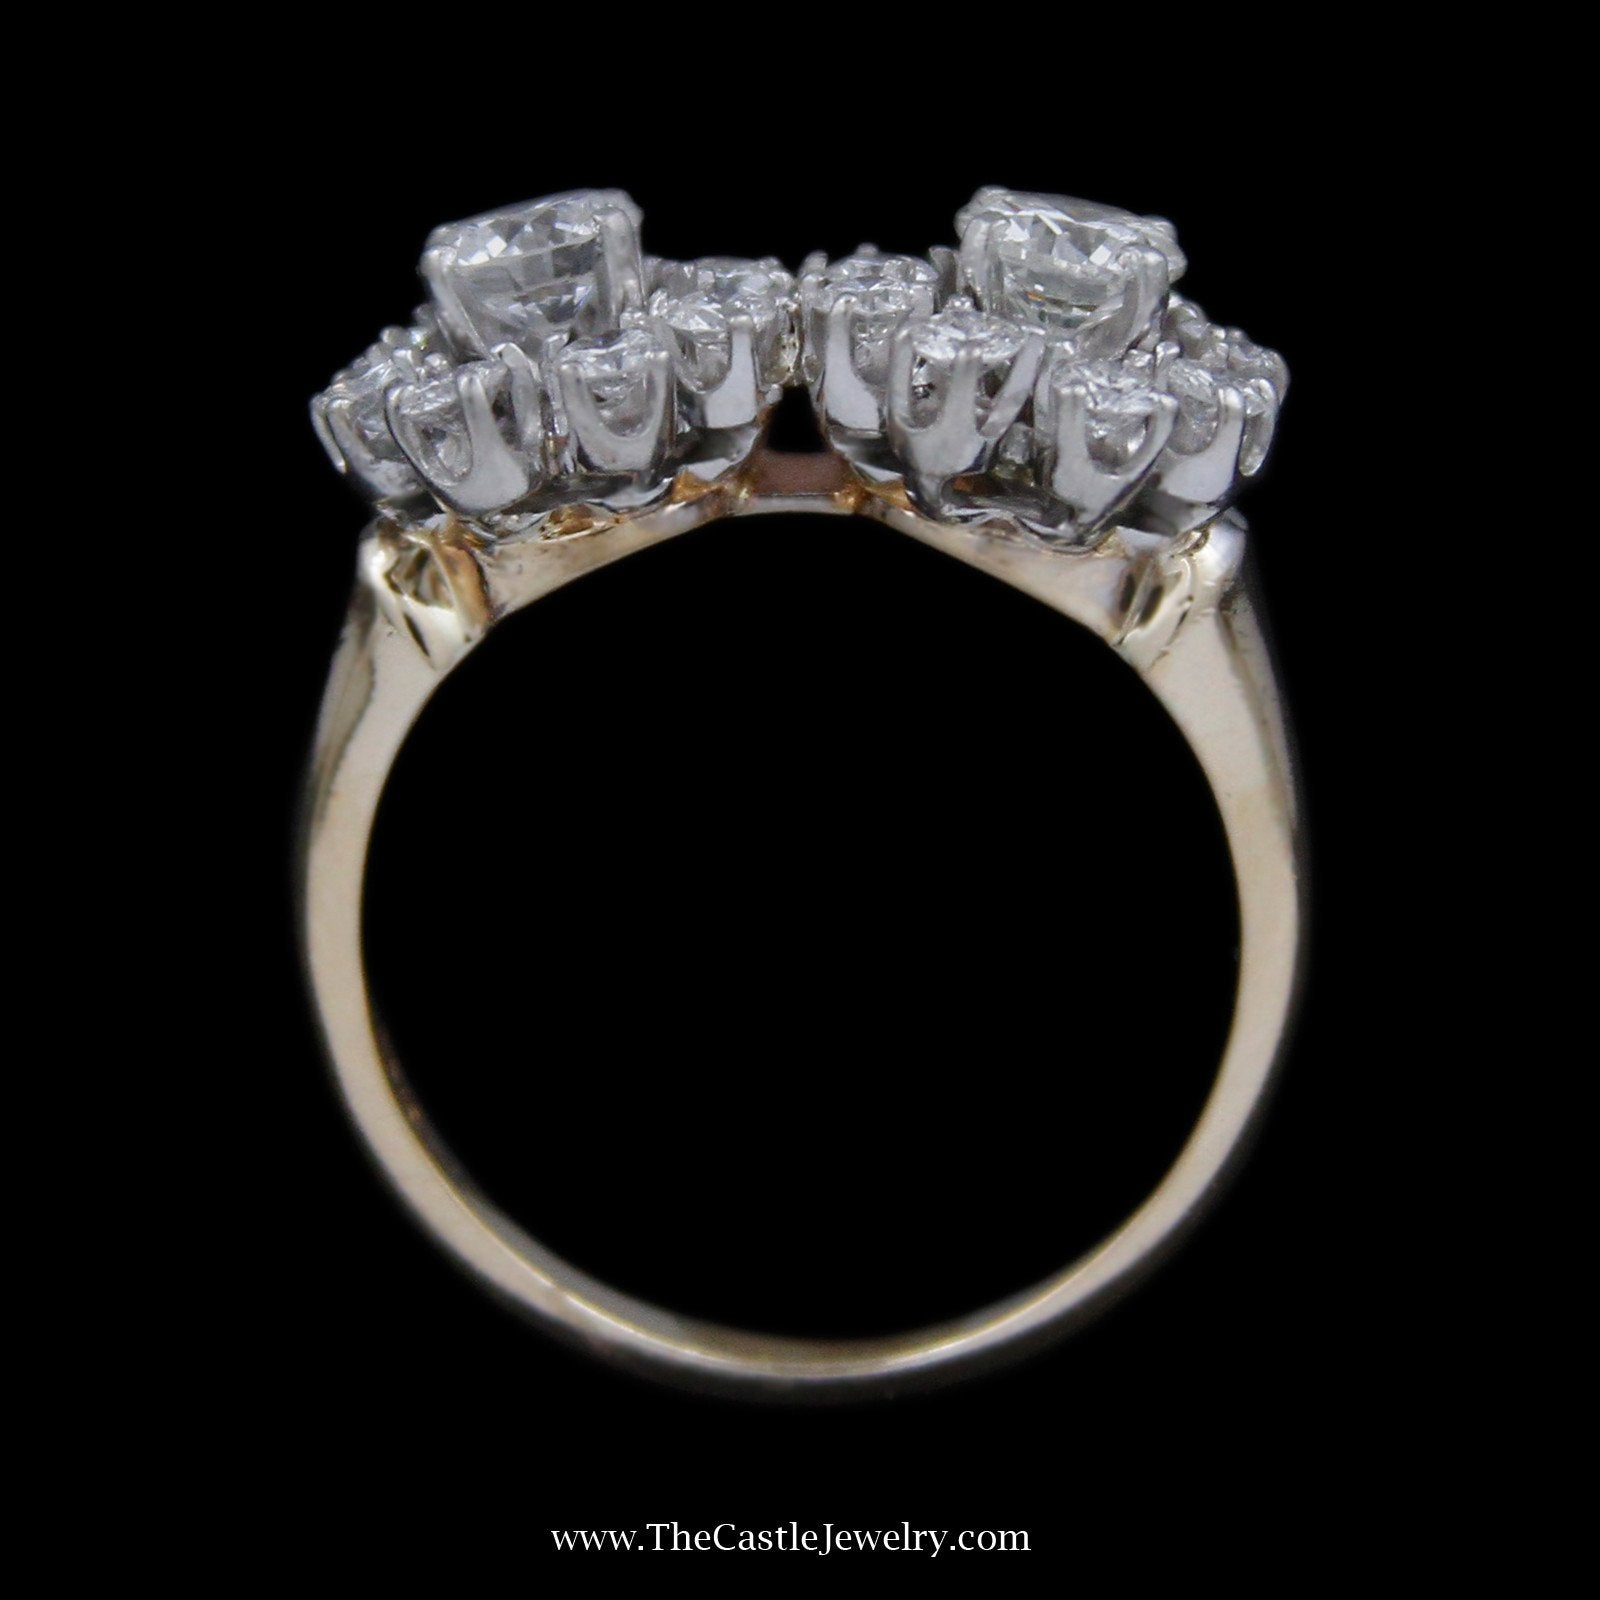 Double Diamond Flower Design Cluster Ring with Round Brilliant Cut Diamonds in Yellow Gold